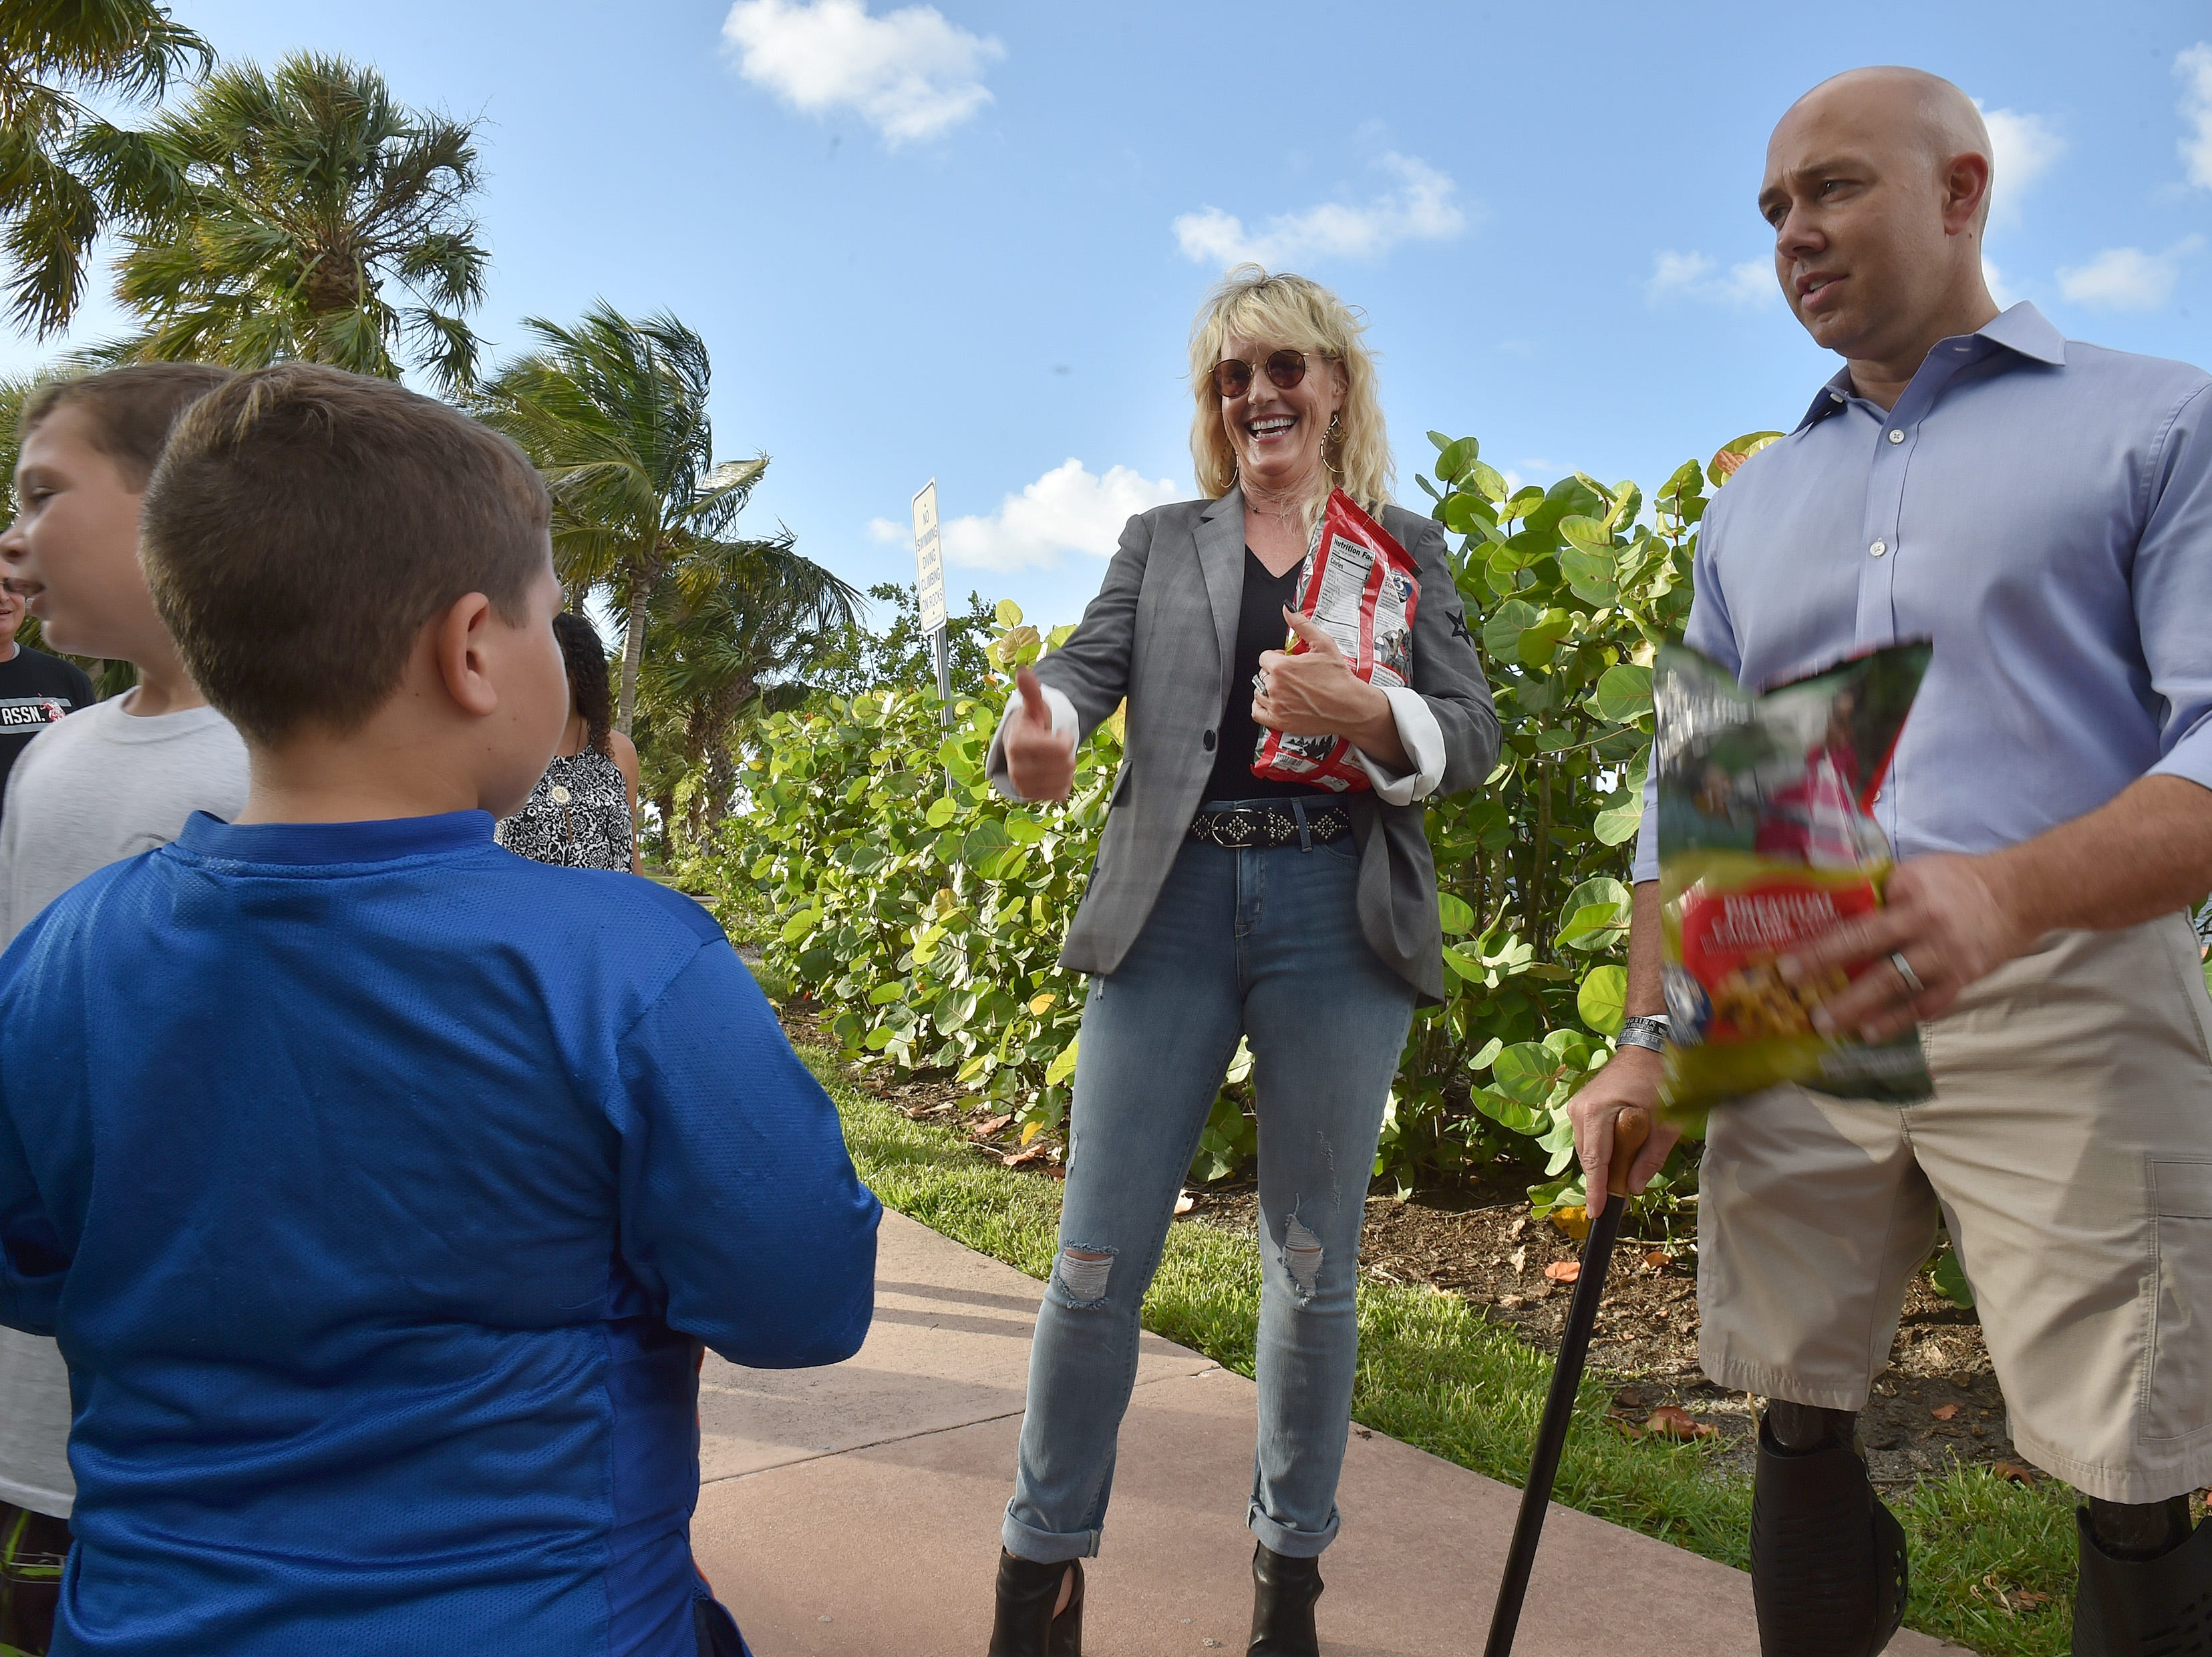 Environmentalist activist Erin Brockovich gestures to Zacharyah Buys, 8 (in blue), of  Jensen Beach after he and his brother Zasha, 10, spoke with Brockovich and U.S. Congressman Brian Mast at Flagler Park on Sunday, September 30, 2018 in Stuart.  Brockovich and Congressman Mast spoke to a crowd at the park, advocating for clean water in Stuart.